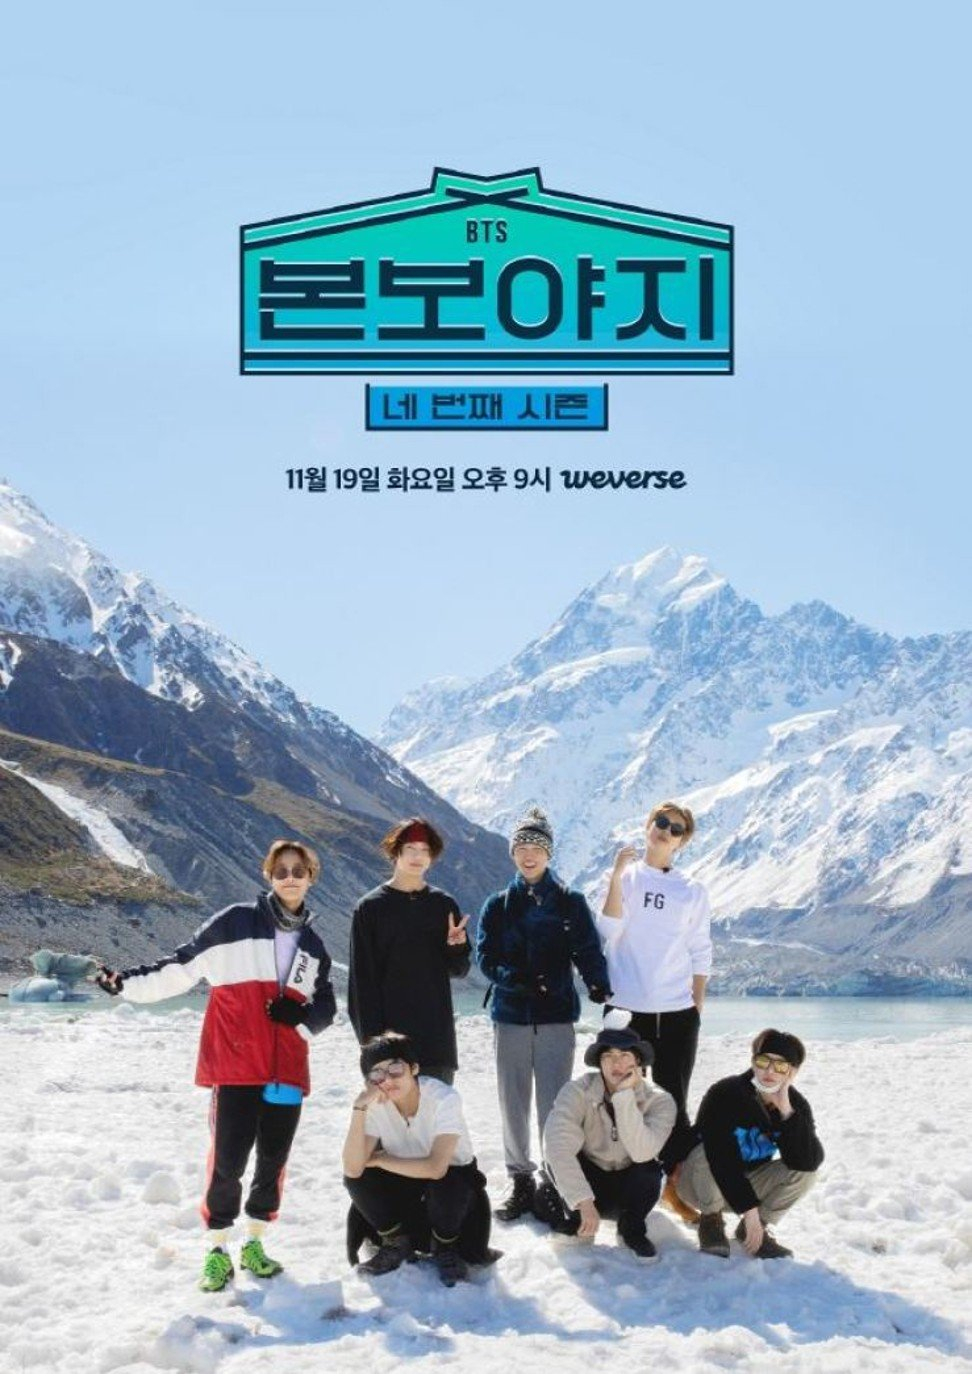 Finally – BTS' reality series Bon Voyage is now streaming its 4th season on Weverse